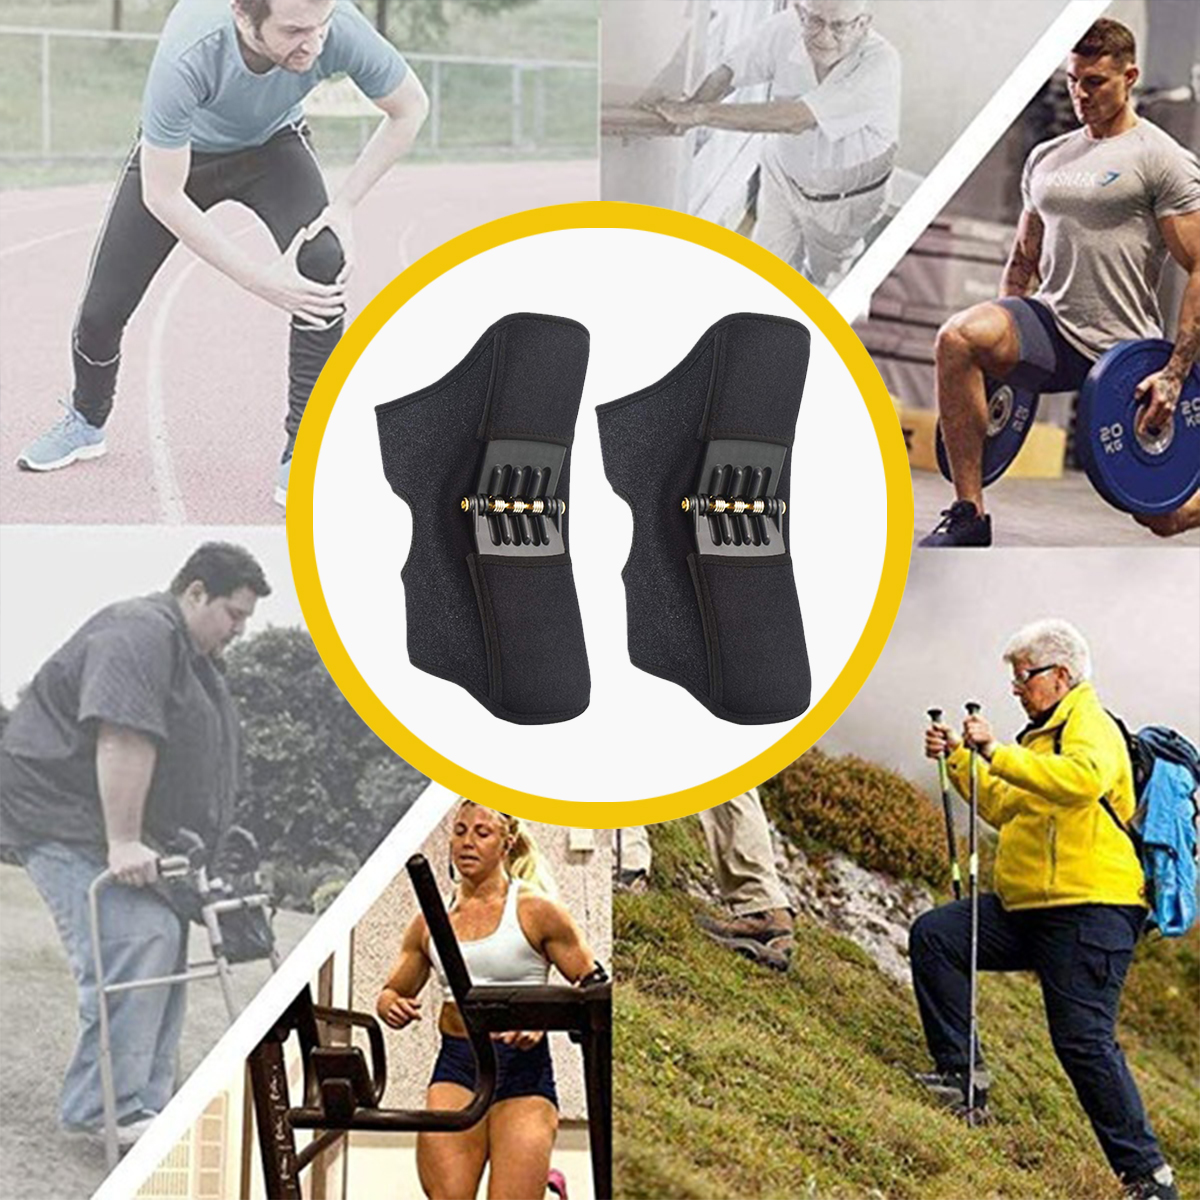 [Upgraded Type] 1 Pair Power Knee Stabilizer Pad Rebound Spring Force Knee Support Brace